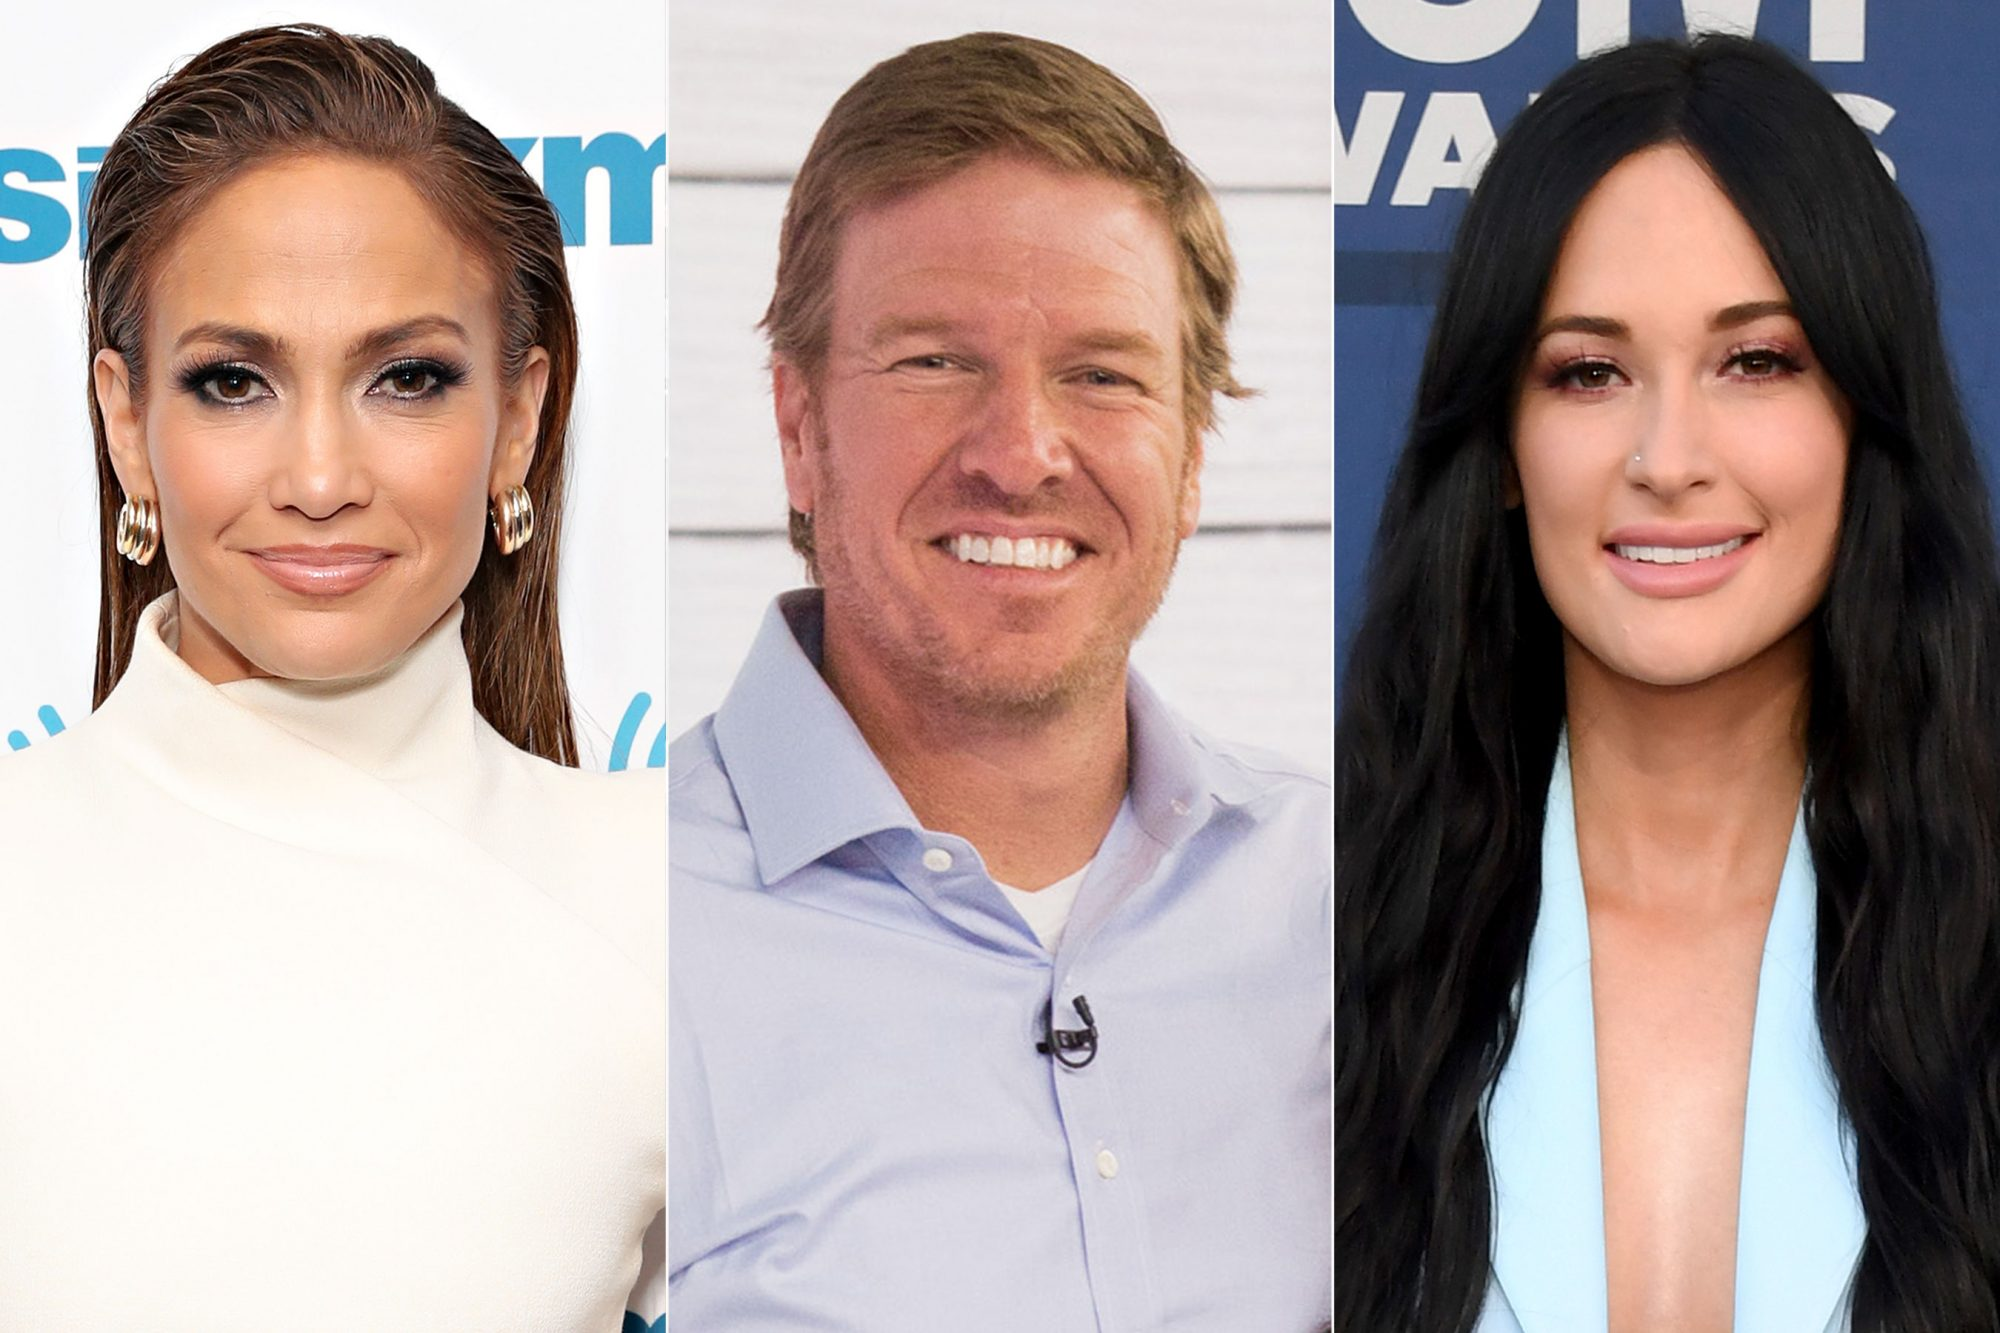 JLO, CHIP GAINES AND KACEY MUSGRAVES